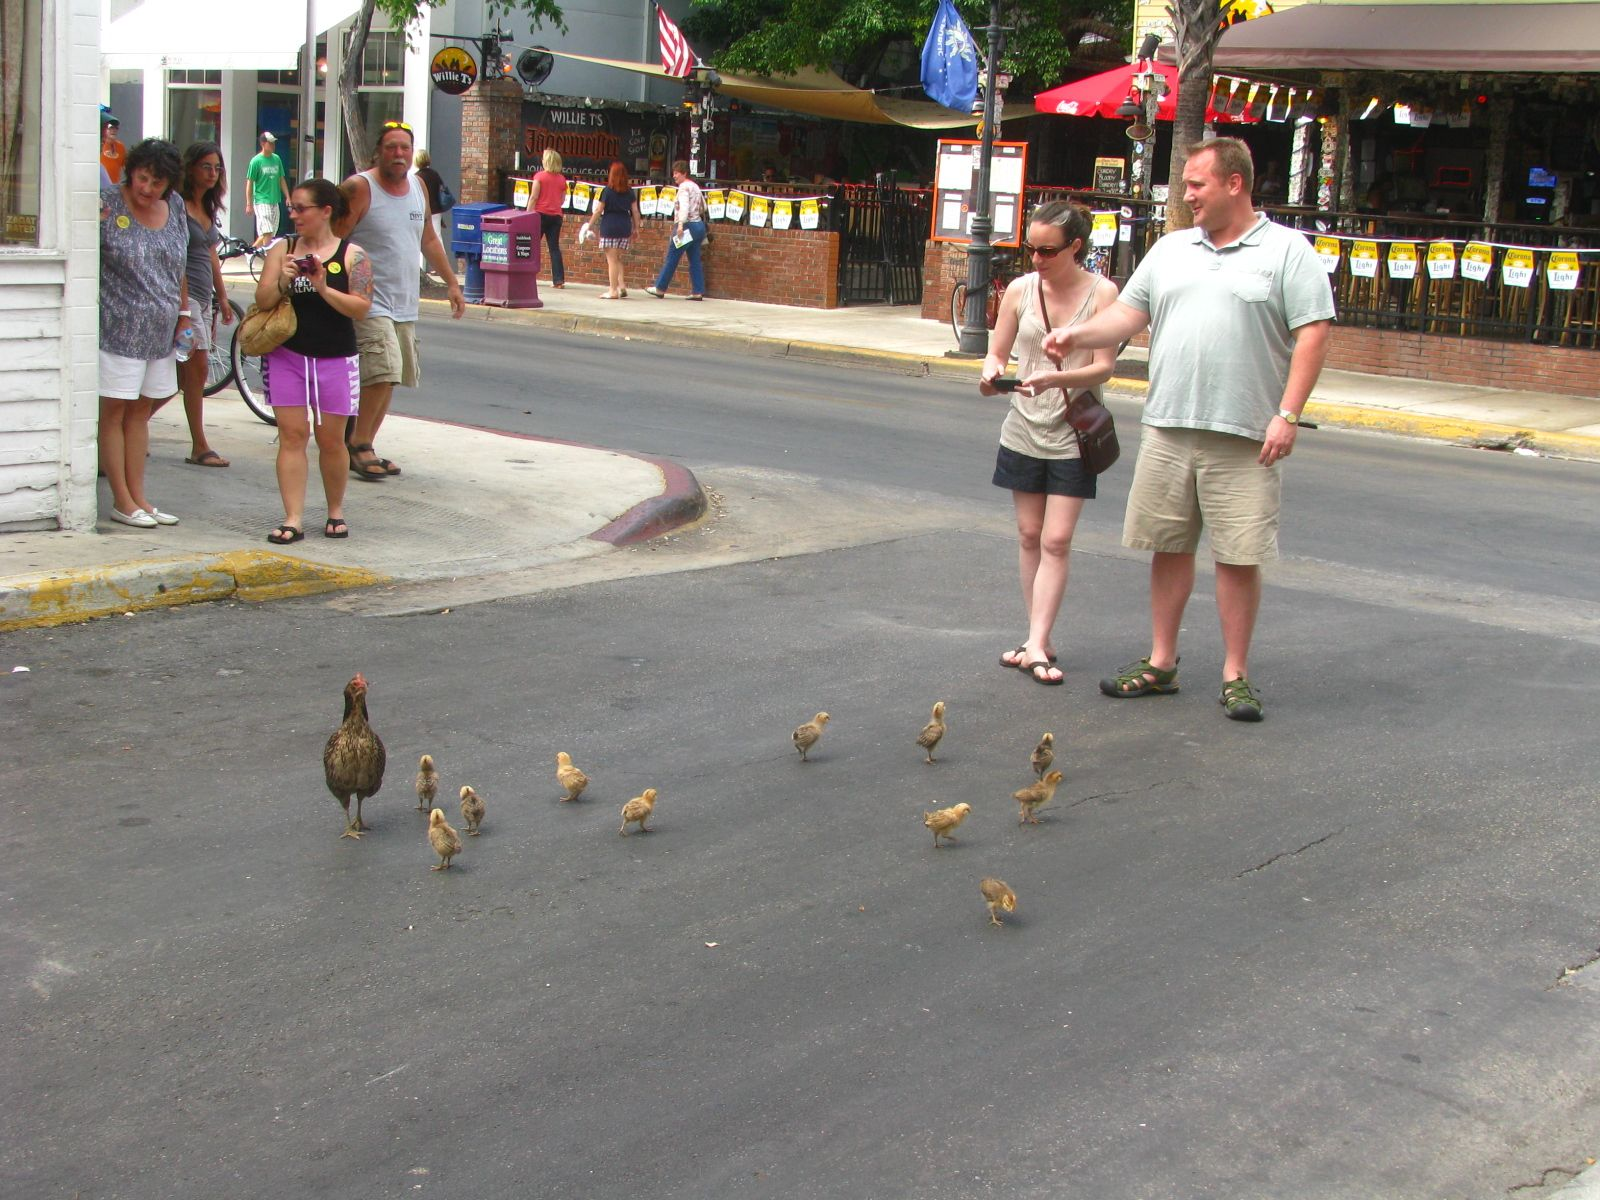 key west | Neighborhoods of Key West | Pinterest | Chicken Runs, Key ...